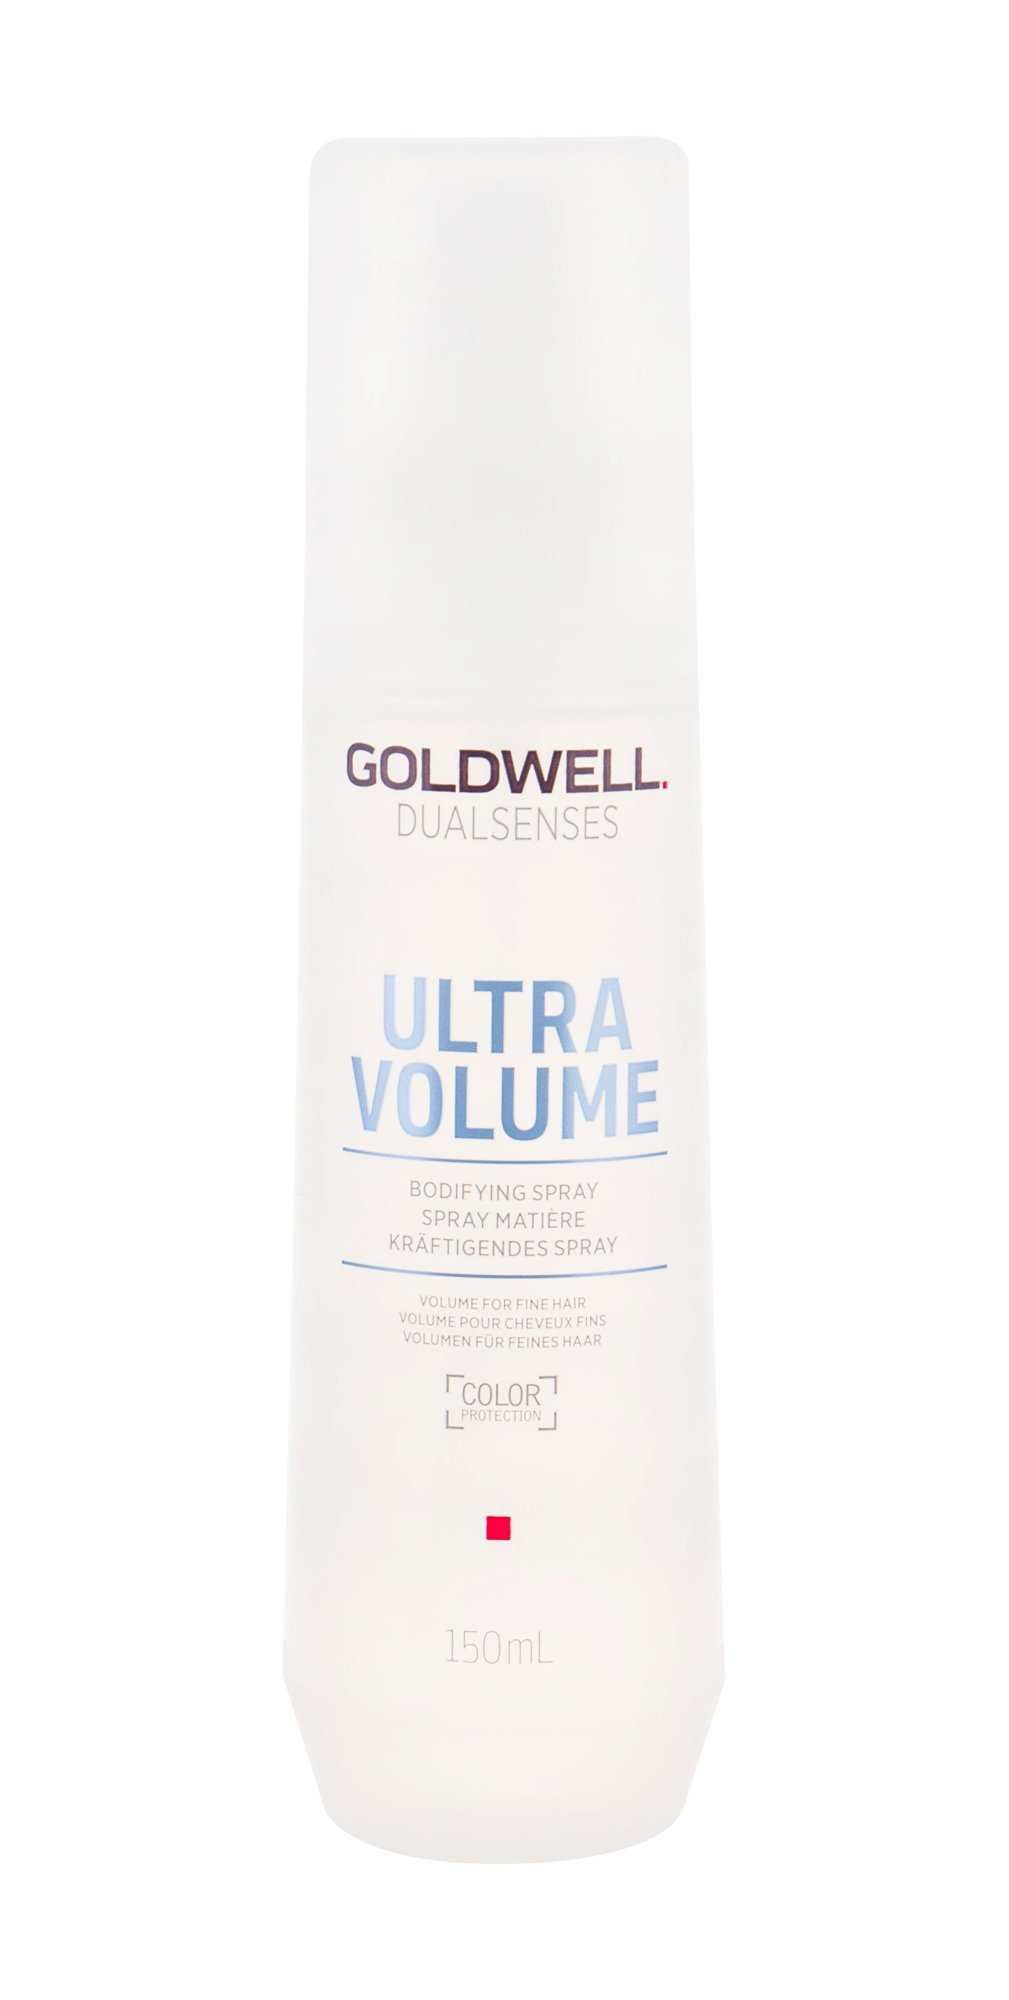 Goldwell Dualsenses Ultra Volume Hair Volume 150ml